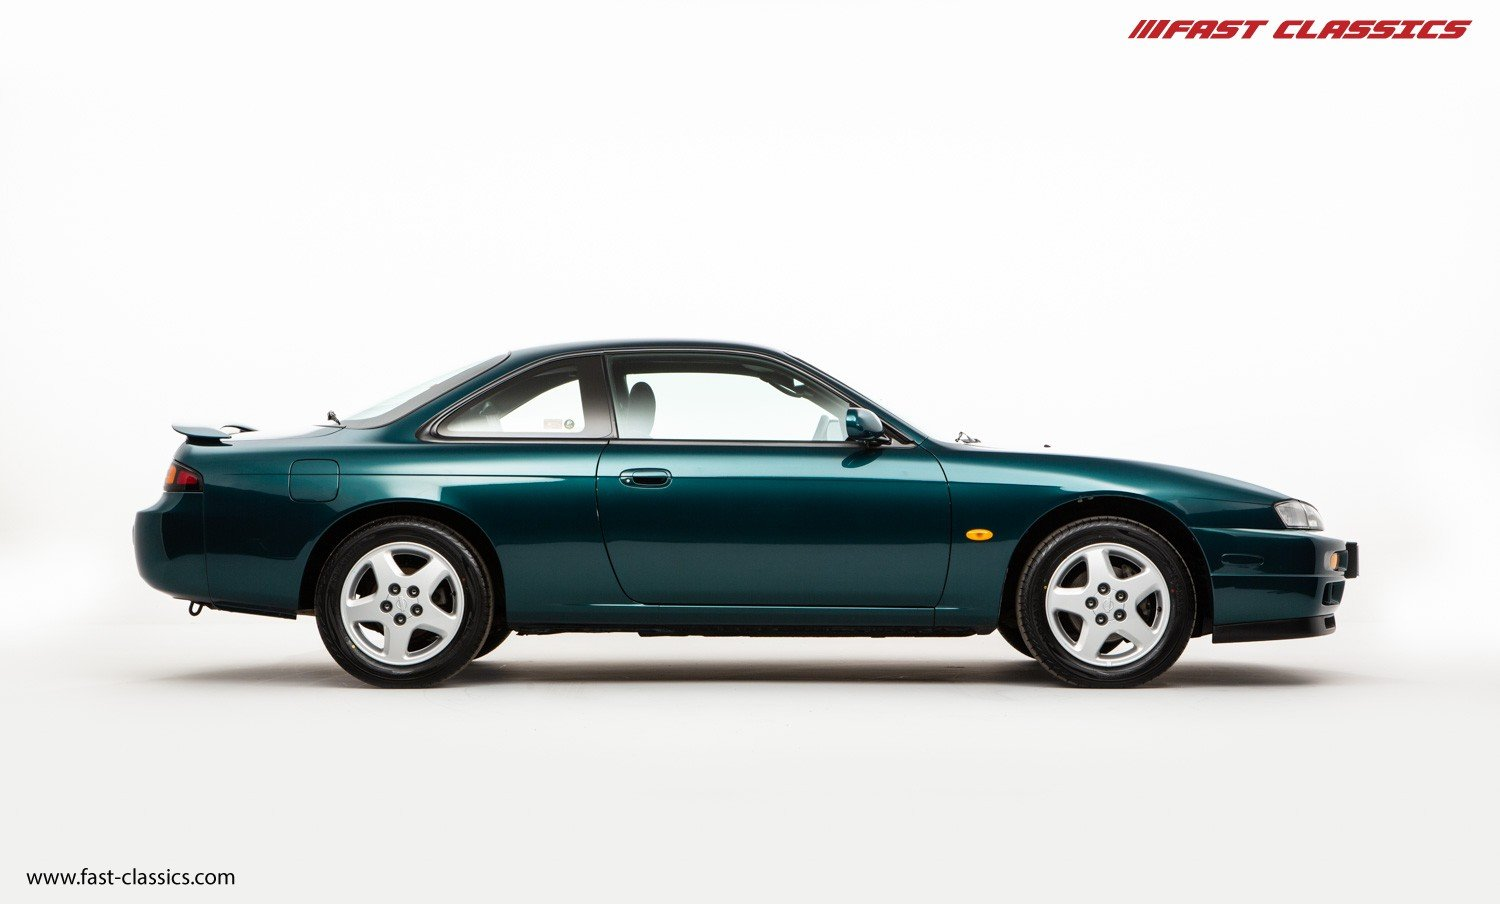 1999 NISSAN 200SX // UK SUPPLIED // 18K MILES // FAMILY OWNED For Sale (picture 1 of 6)